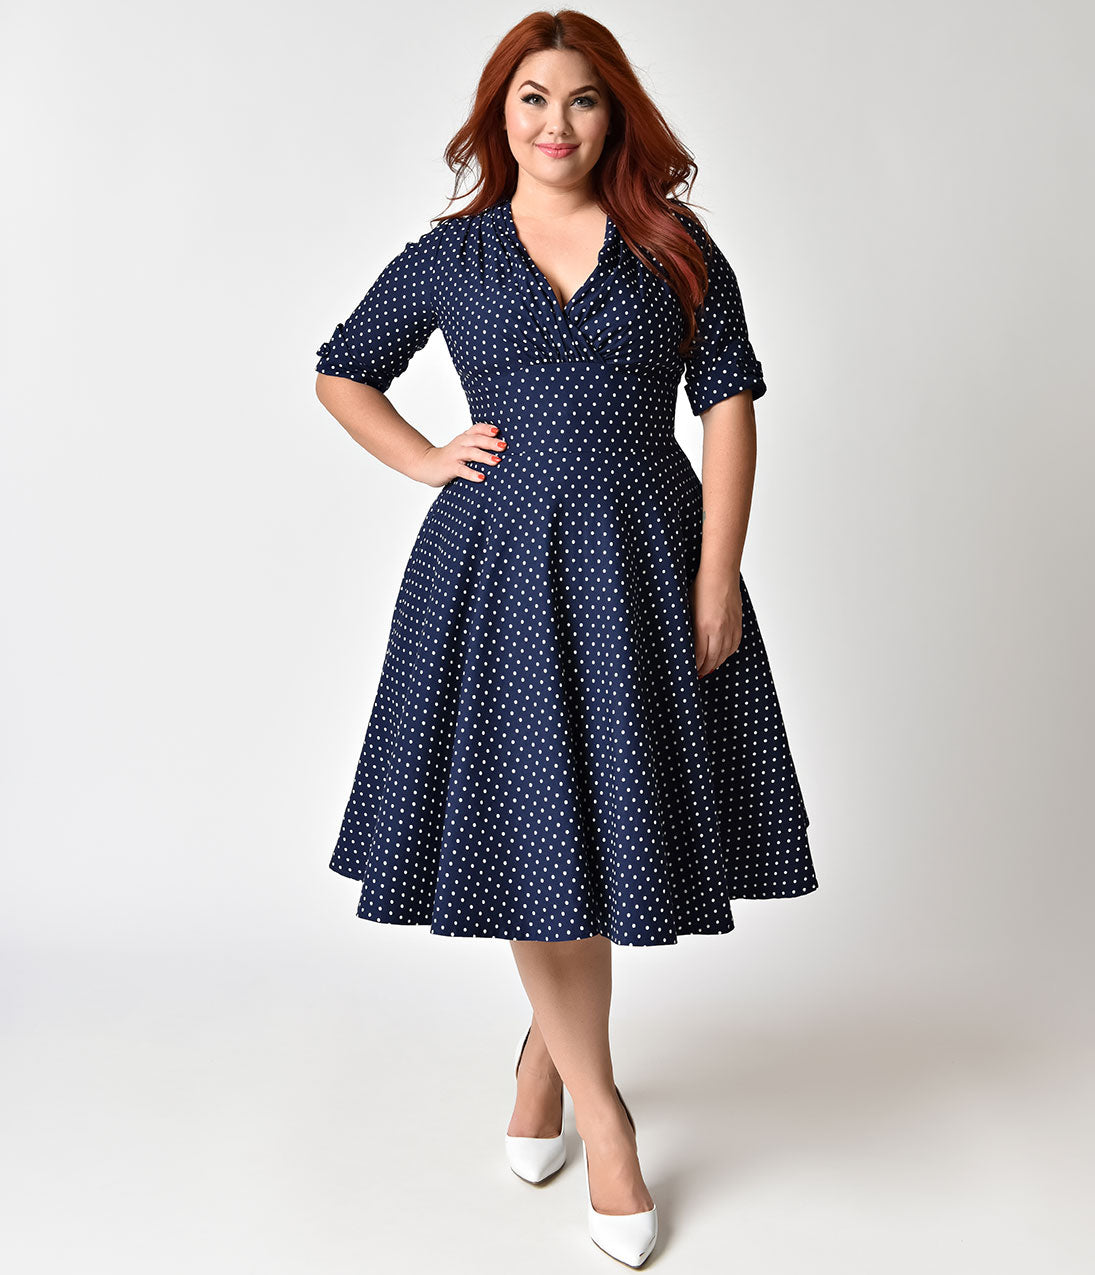 1950s Dresses, 50s Dresses | 1950s Style Dresses 1950S Navy  White Dot Delores Swing Dress With Sleeves $92.00 AT vintagedancer.com